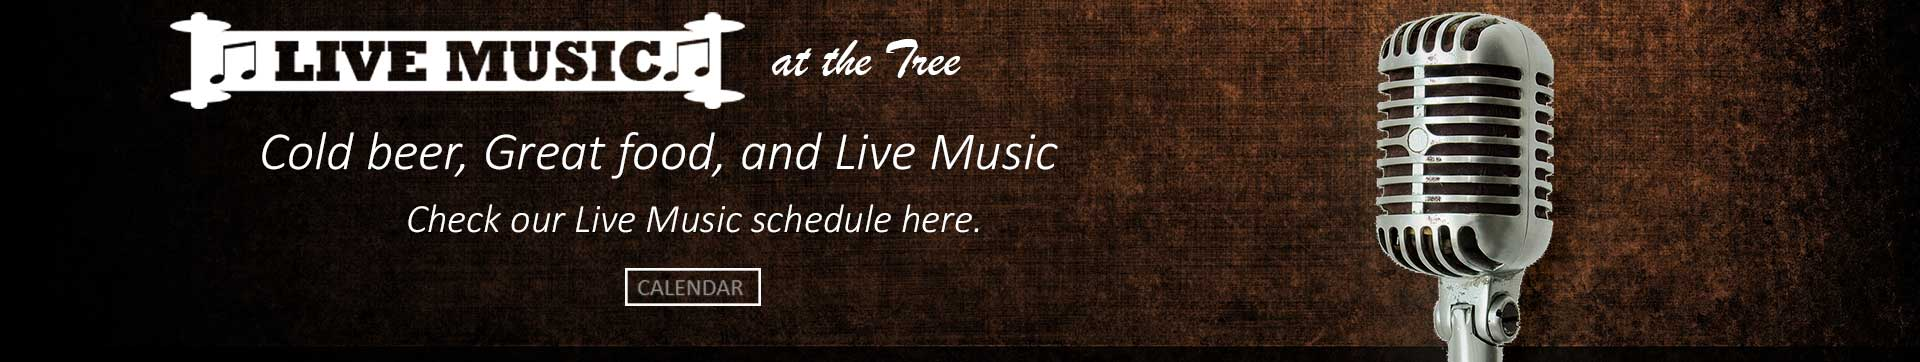 Live Music at the Shade Tree